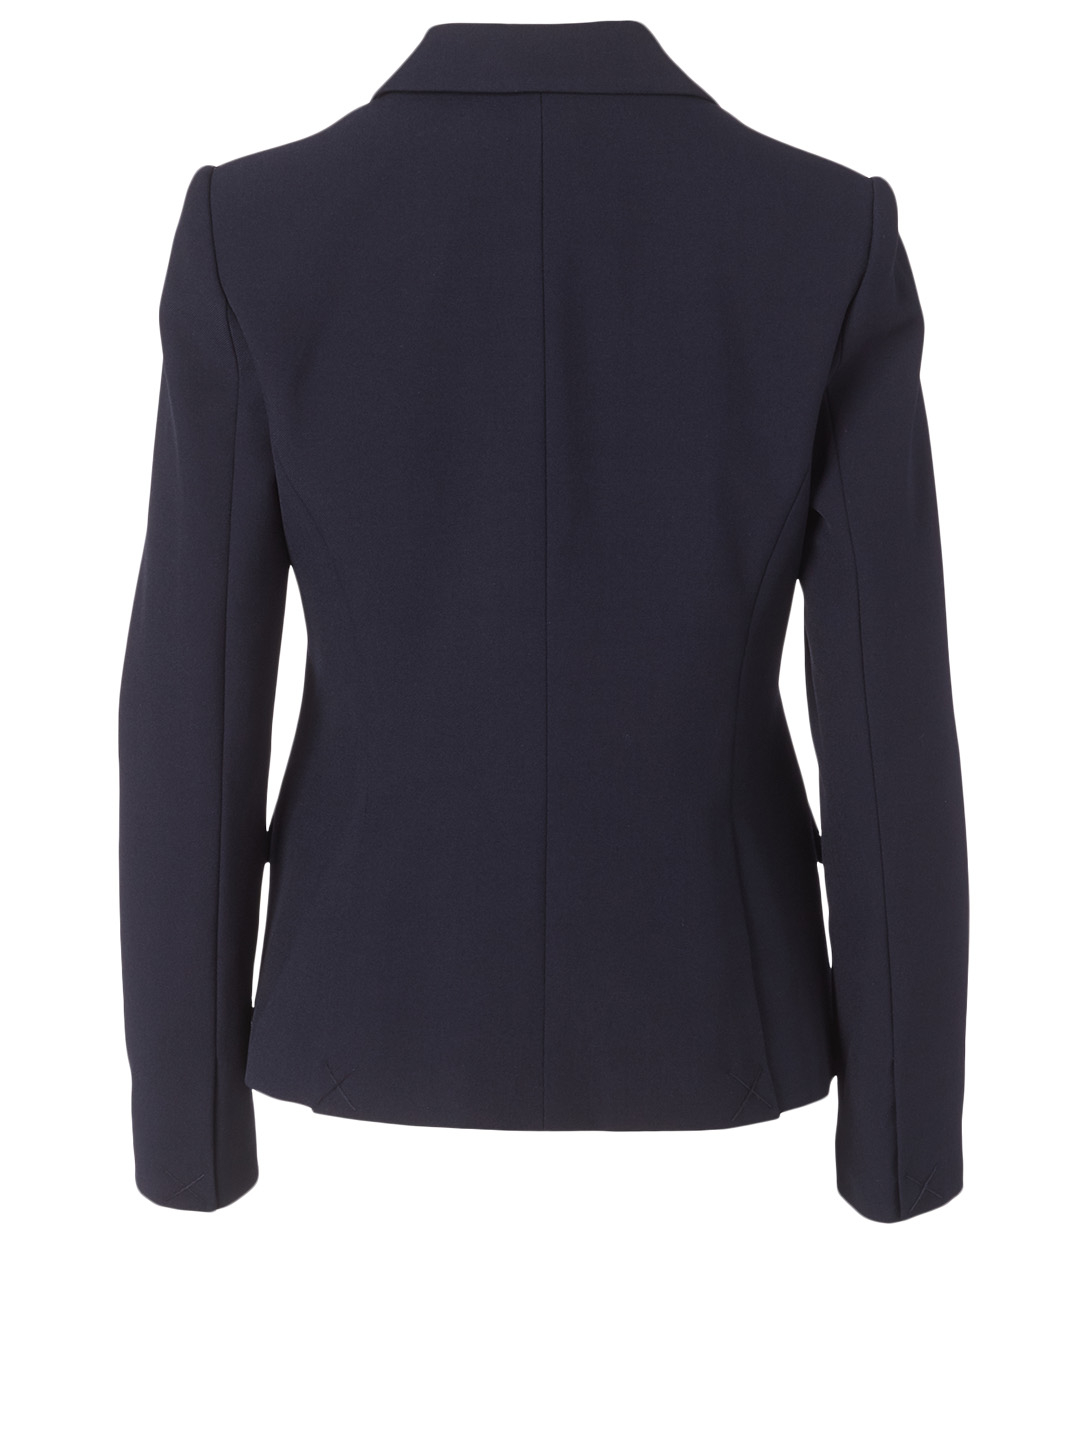 A.L.C. Hastings II Jacket Women's Blue